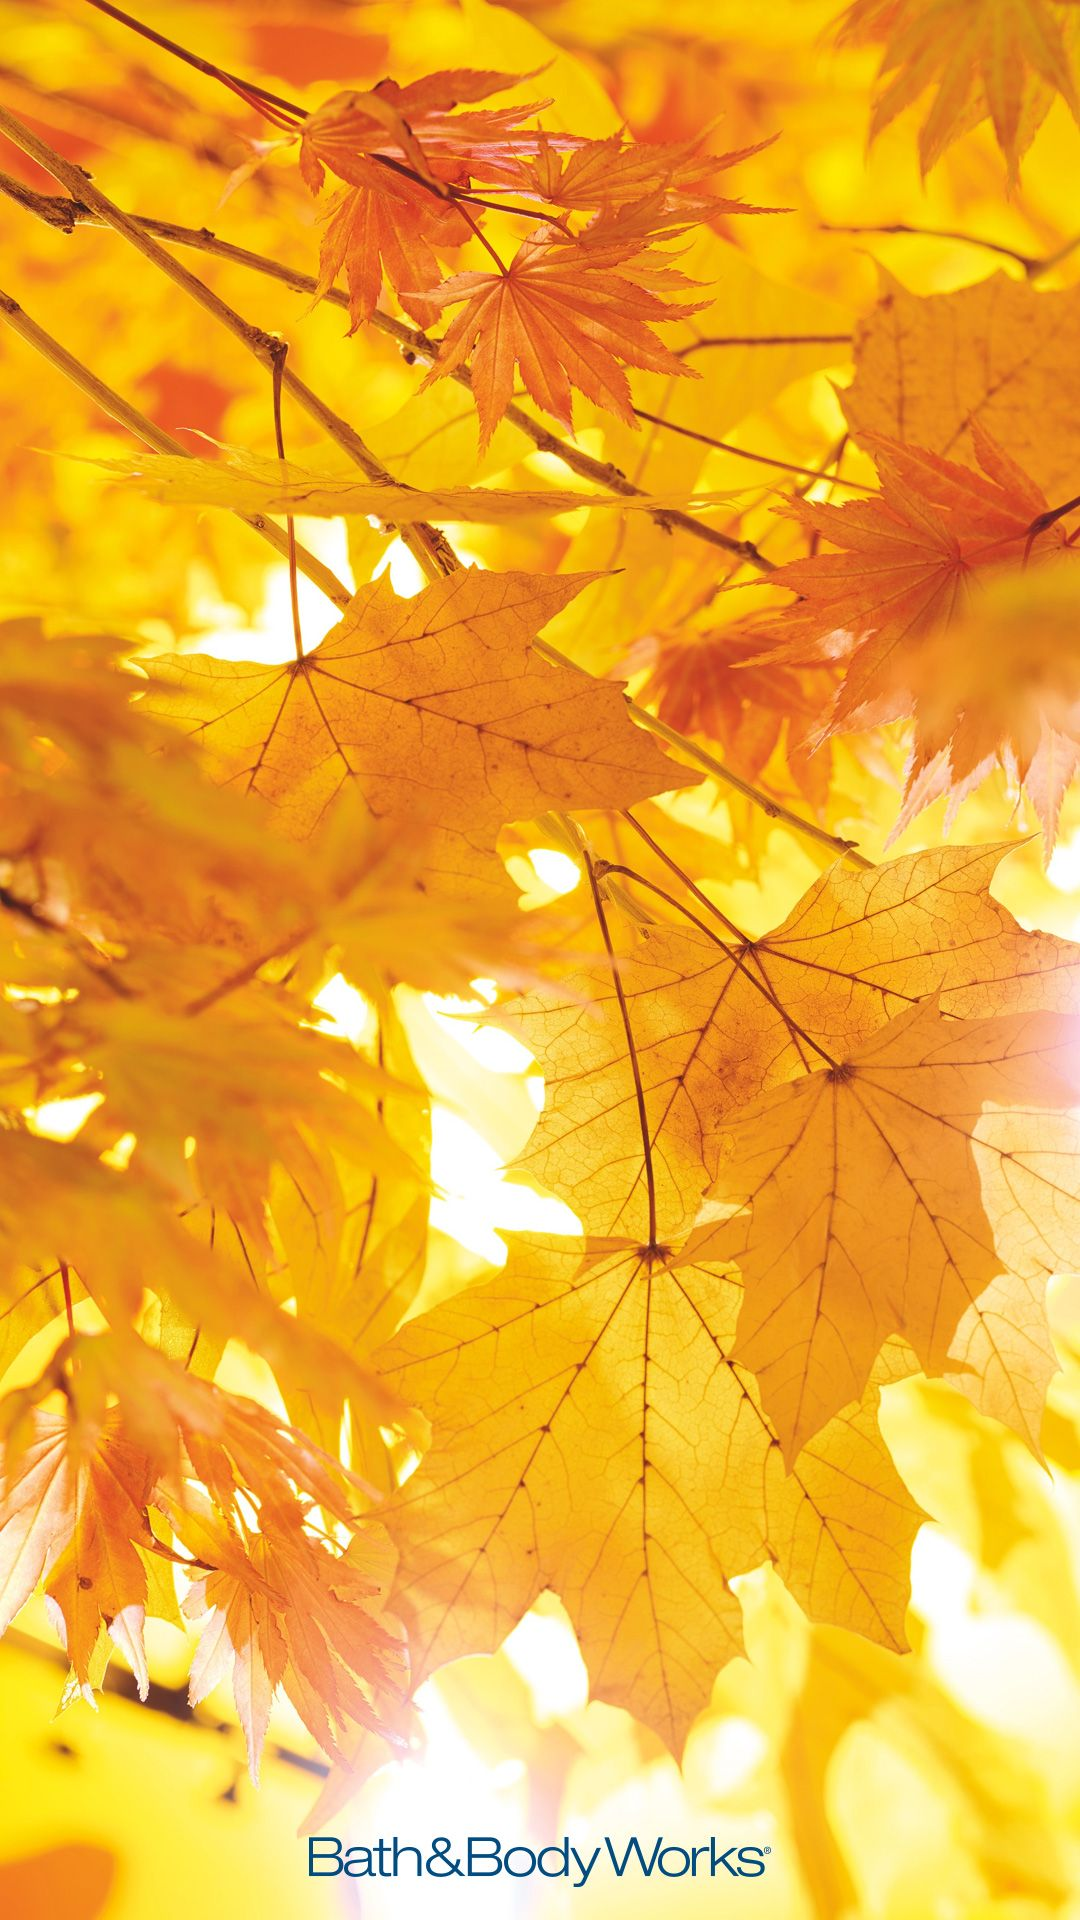 Fall Leaves Iphone Wallpaper Fall Wallpaper Autumn Leaves